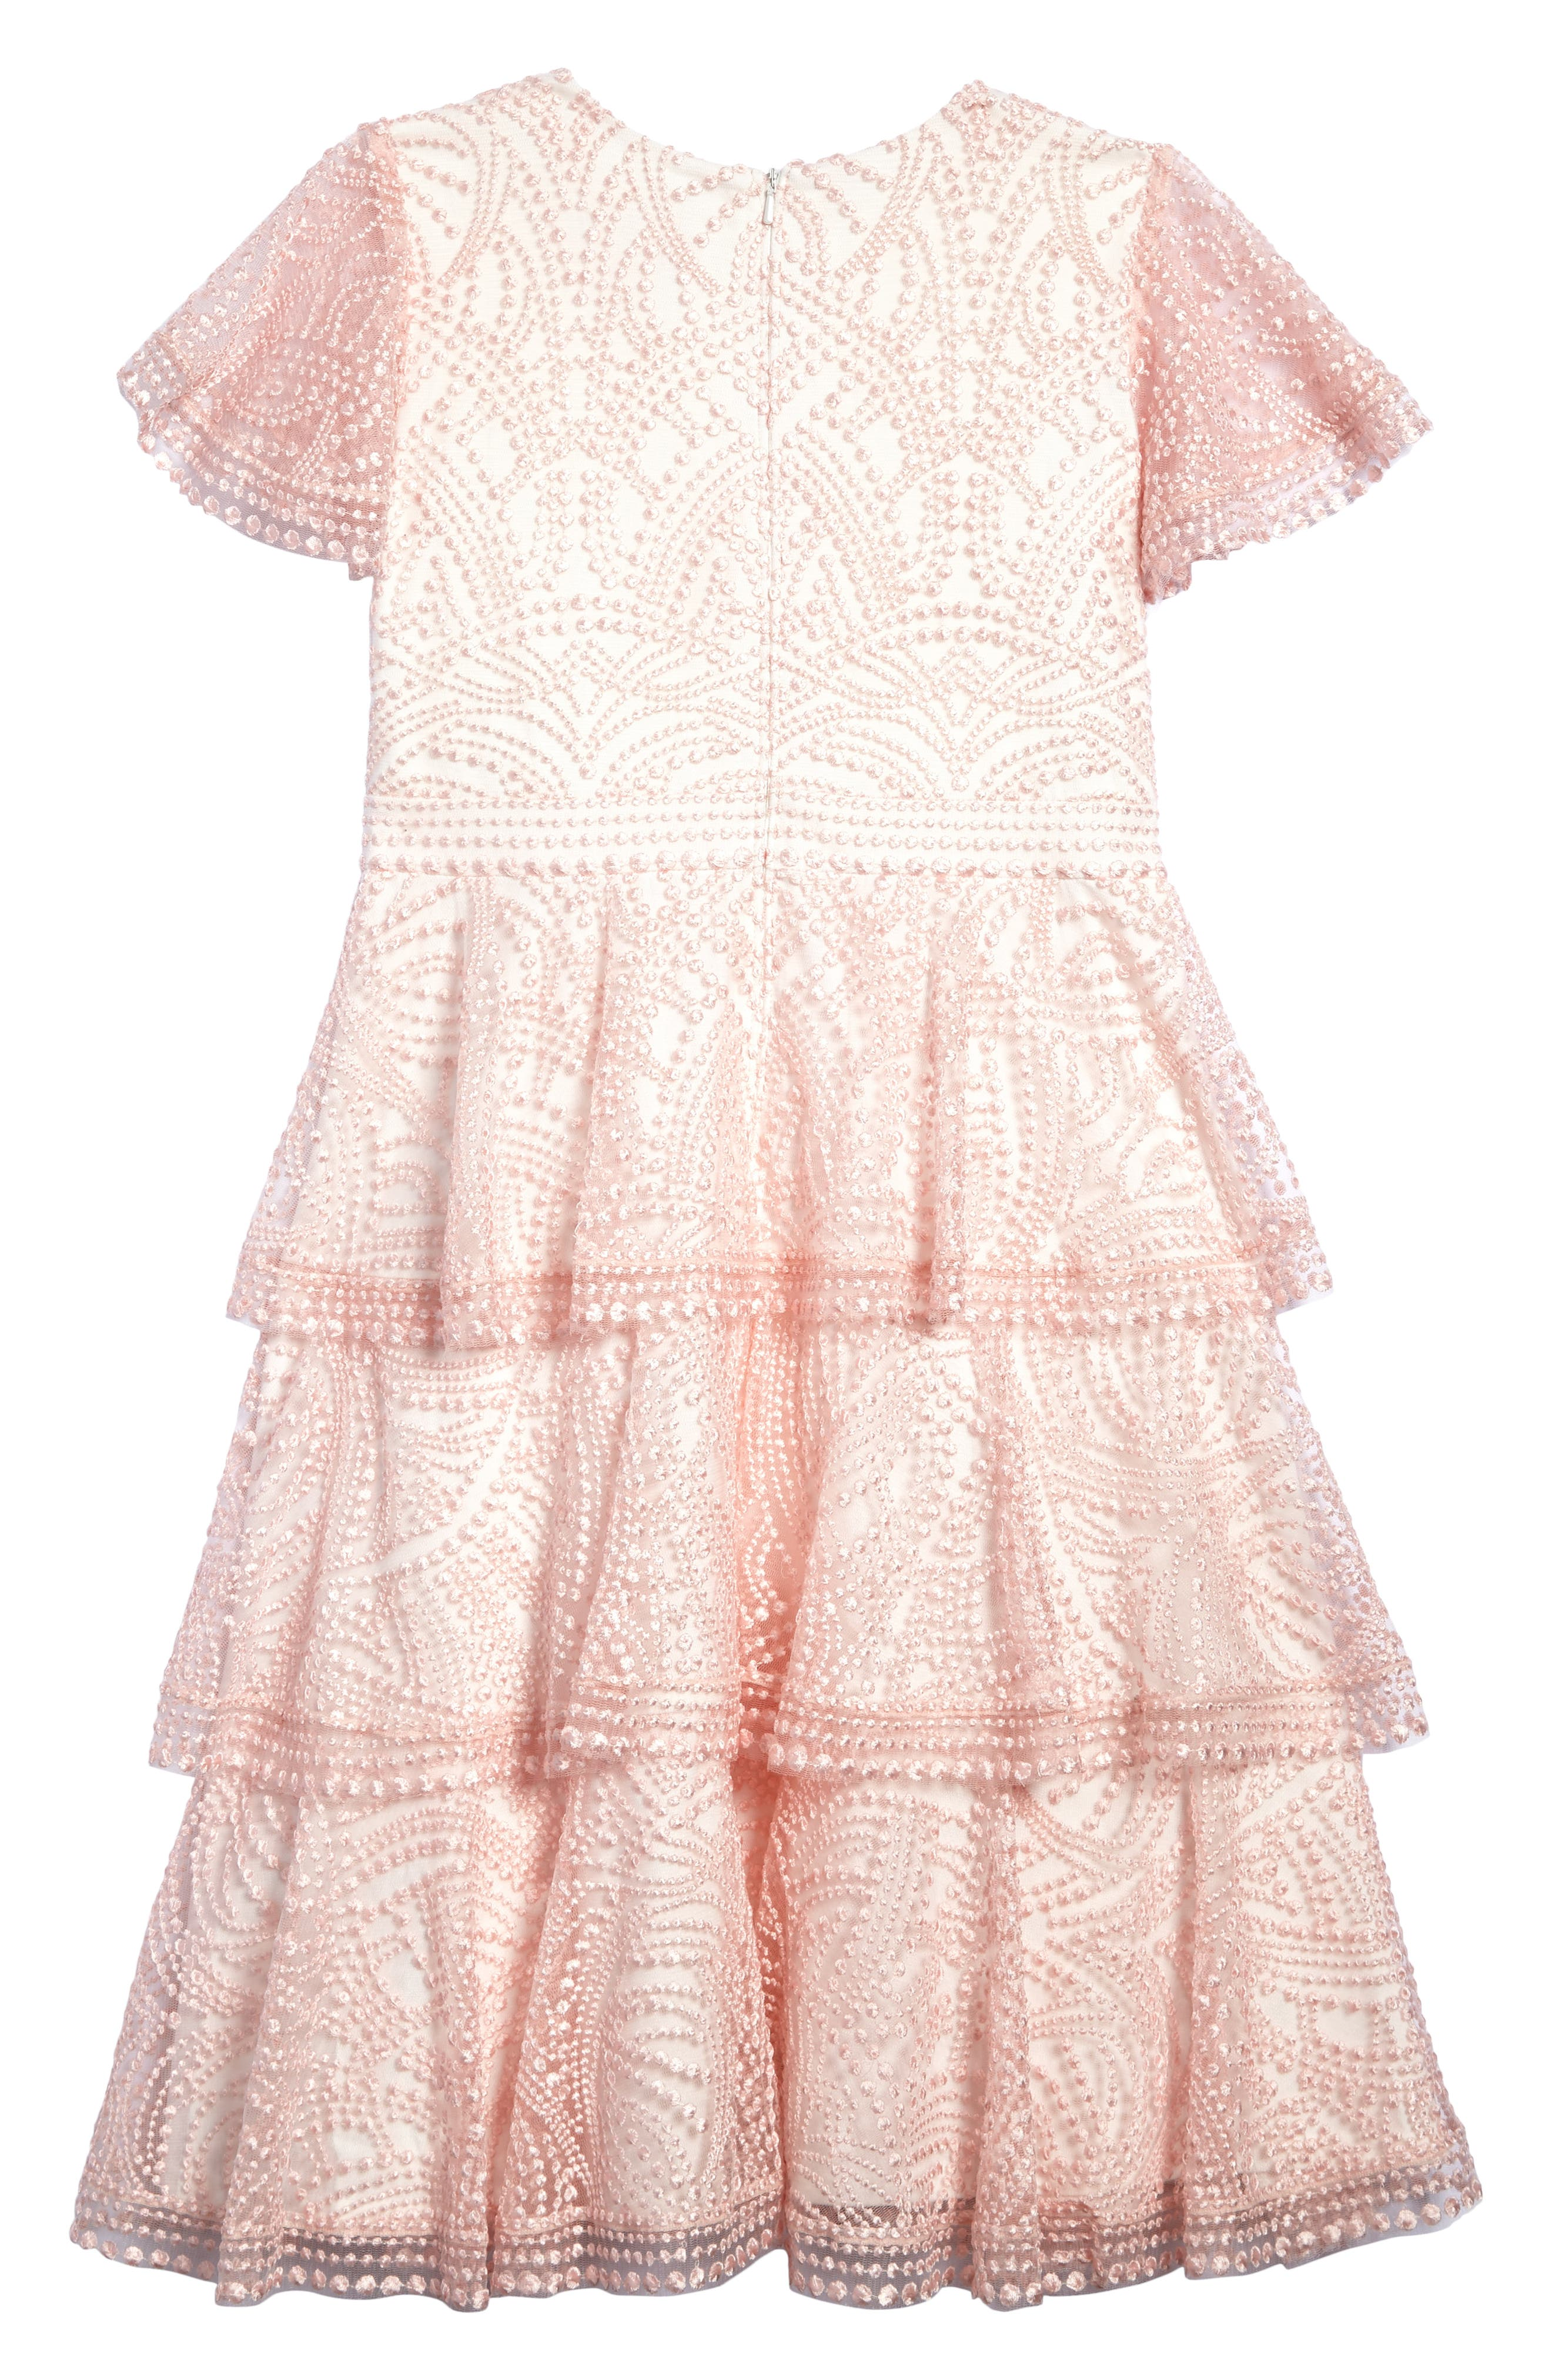 Embroidered Ruffle Dress,                             Alternate thumbnail 2, color,                             Pretty Pink